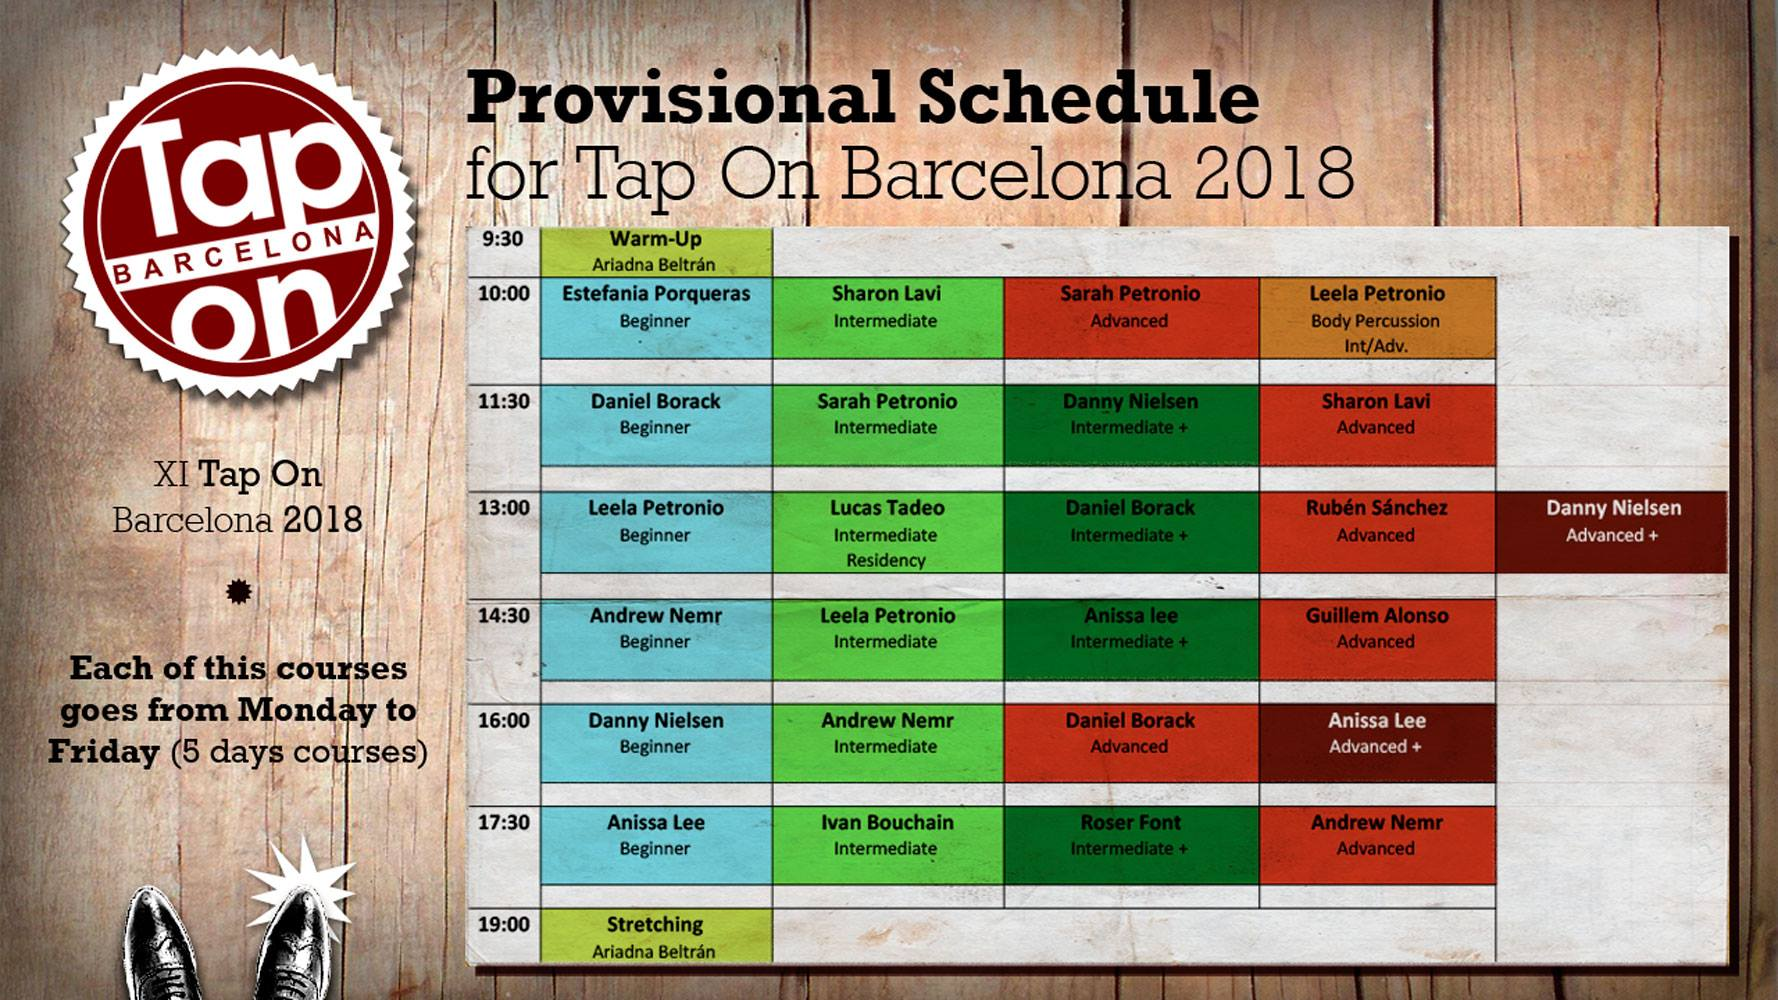 Tap On Barcelona 2018 Schedule